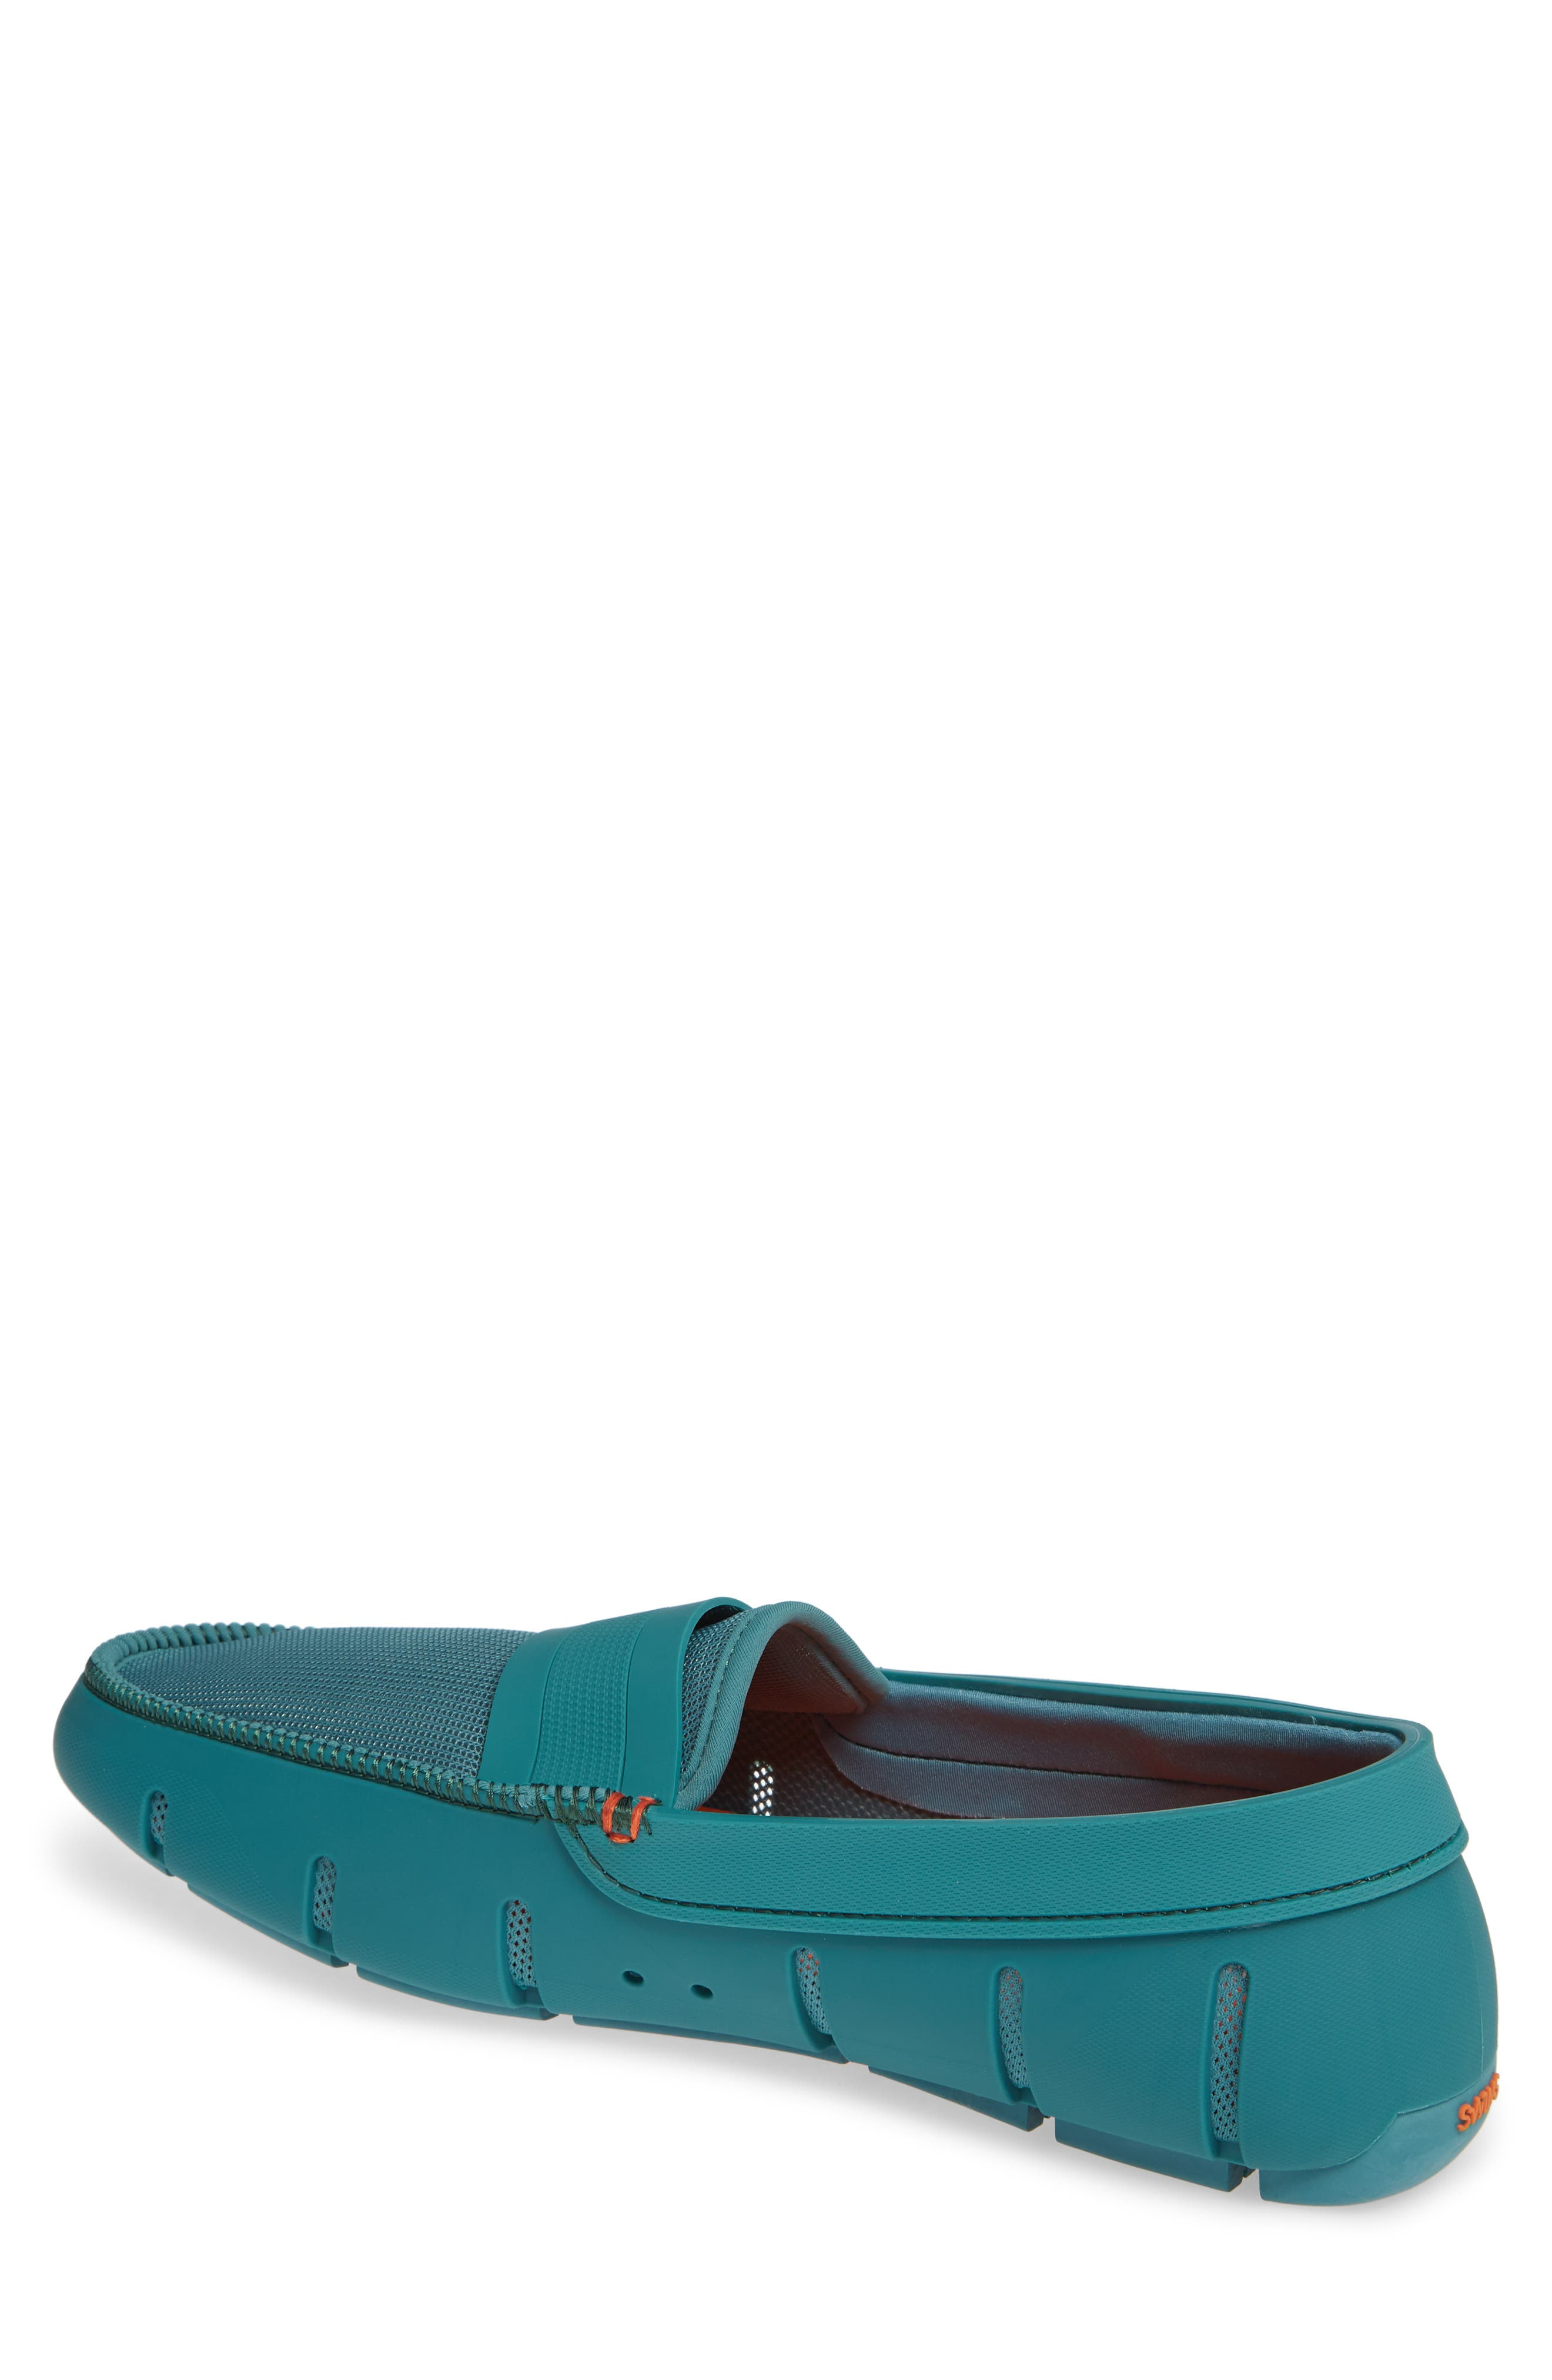 Stride Driving Loafer,                             Alternate thumbnail 2, color,                             TEAL GREEN